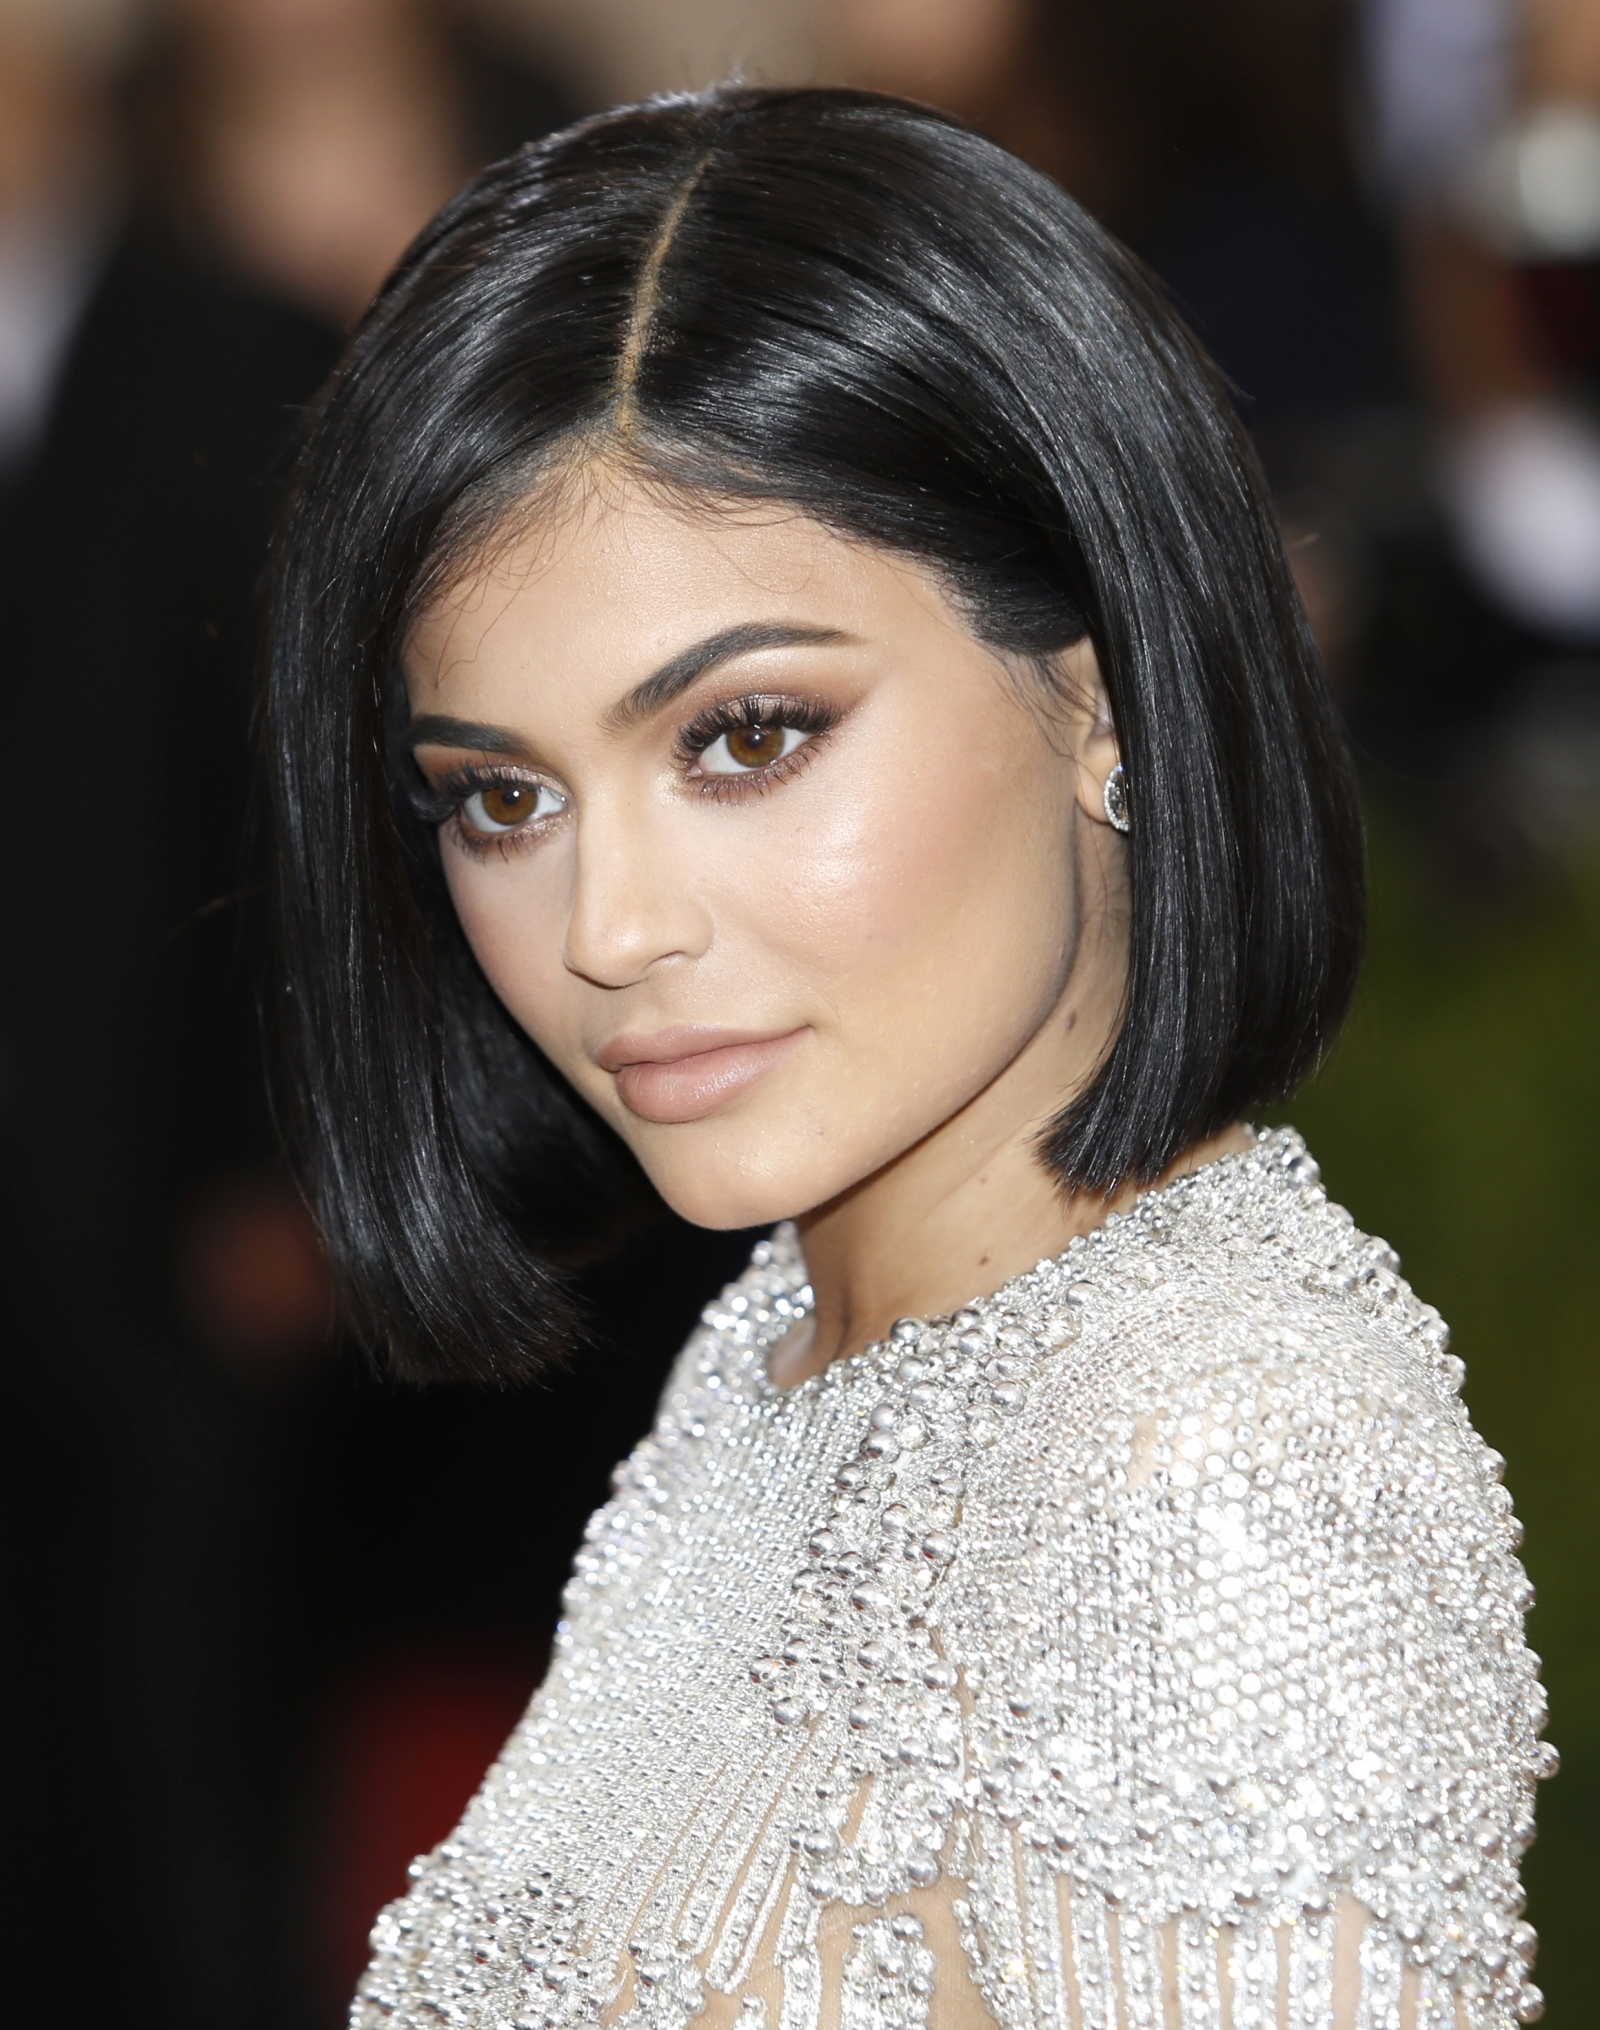 Kylie Jenner Slammed For Lying About Big Boobs As She